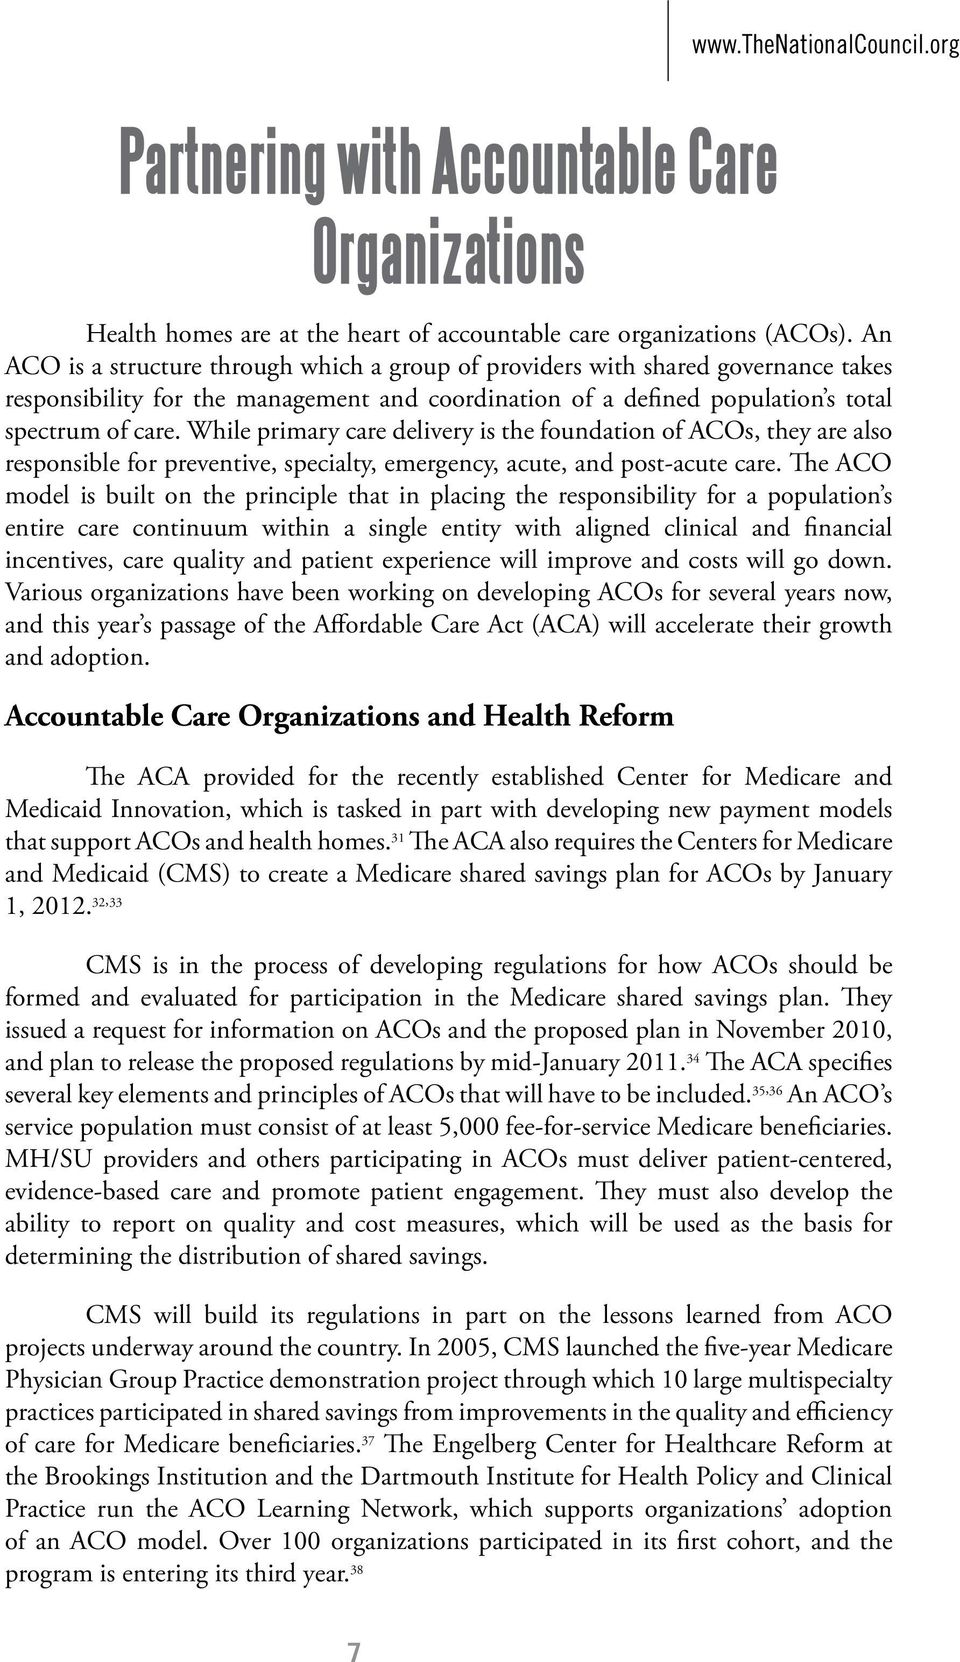 While primary care delivery is the foundation of ACOs, they are also responsible for preventive, specialty, emergency, acute, and post-acute care.